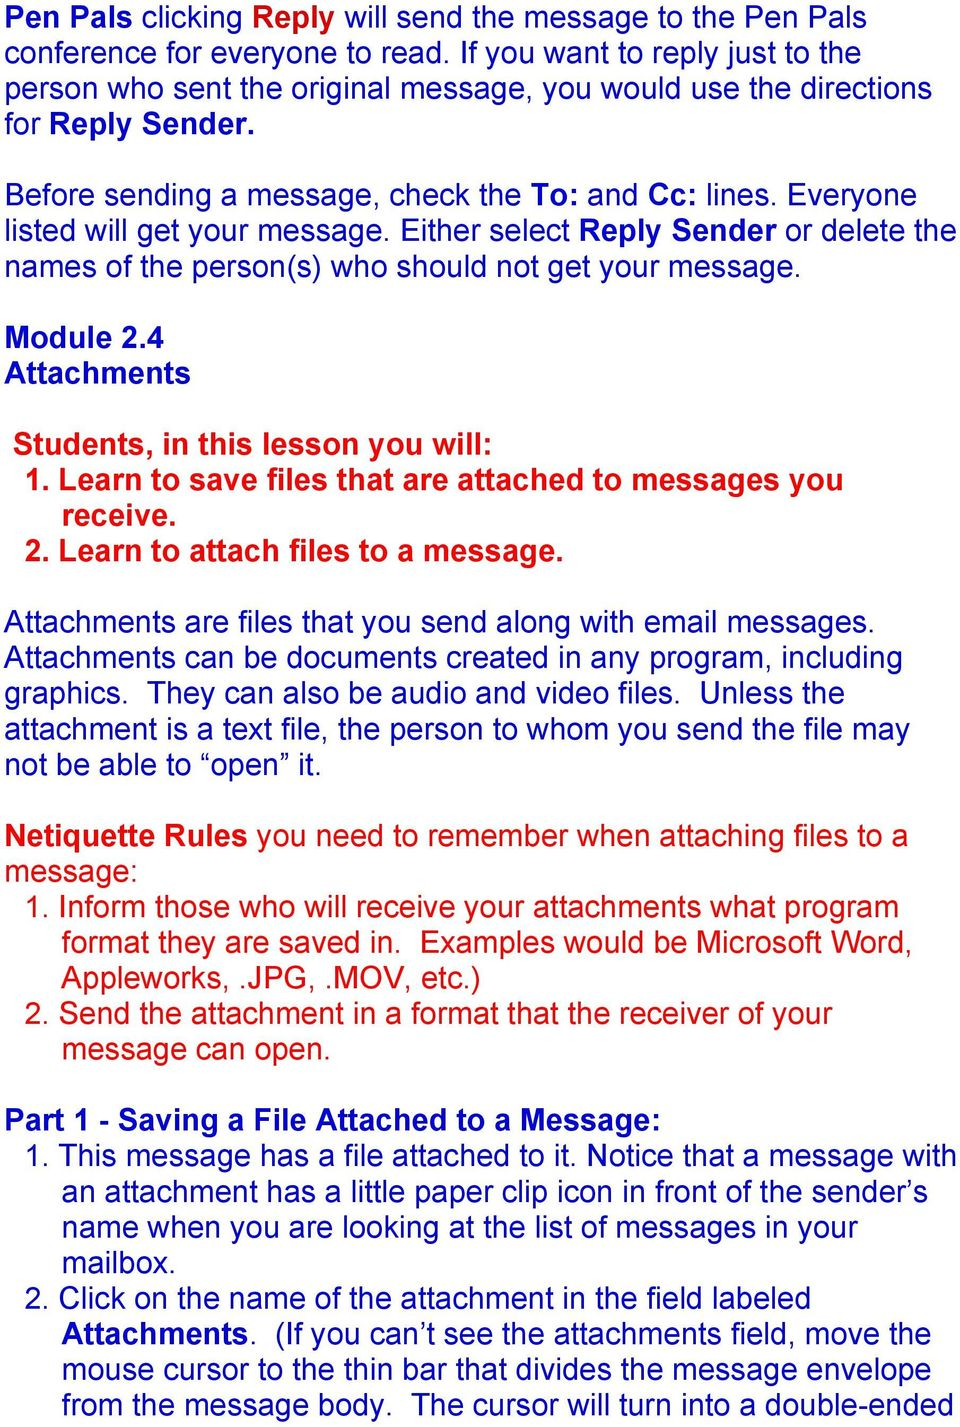 Everyone listed will get your message. Either select Reply Sender or delete the names of the person(s) who should not get your message. Module 2.4 Attachments Students, in this lesson you will: 1.